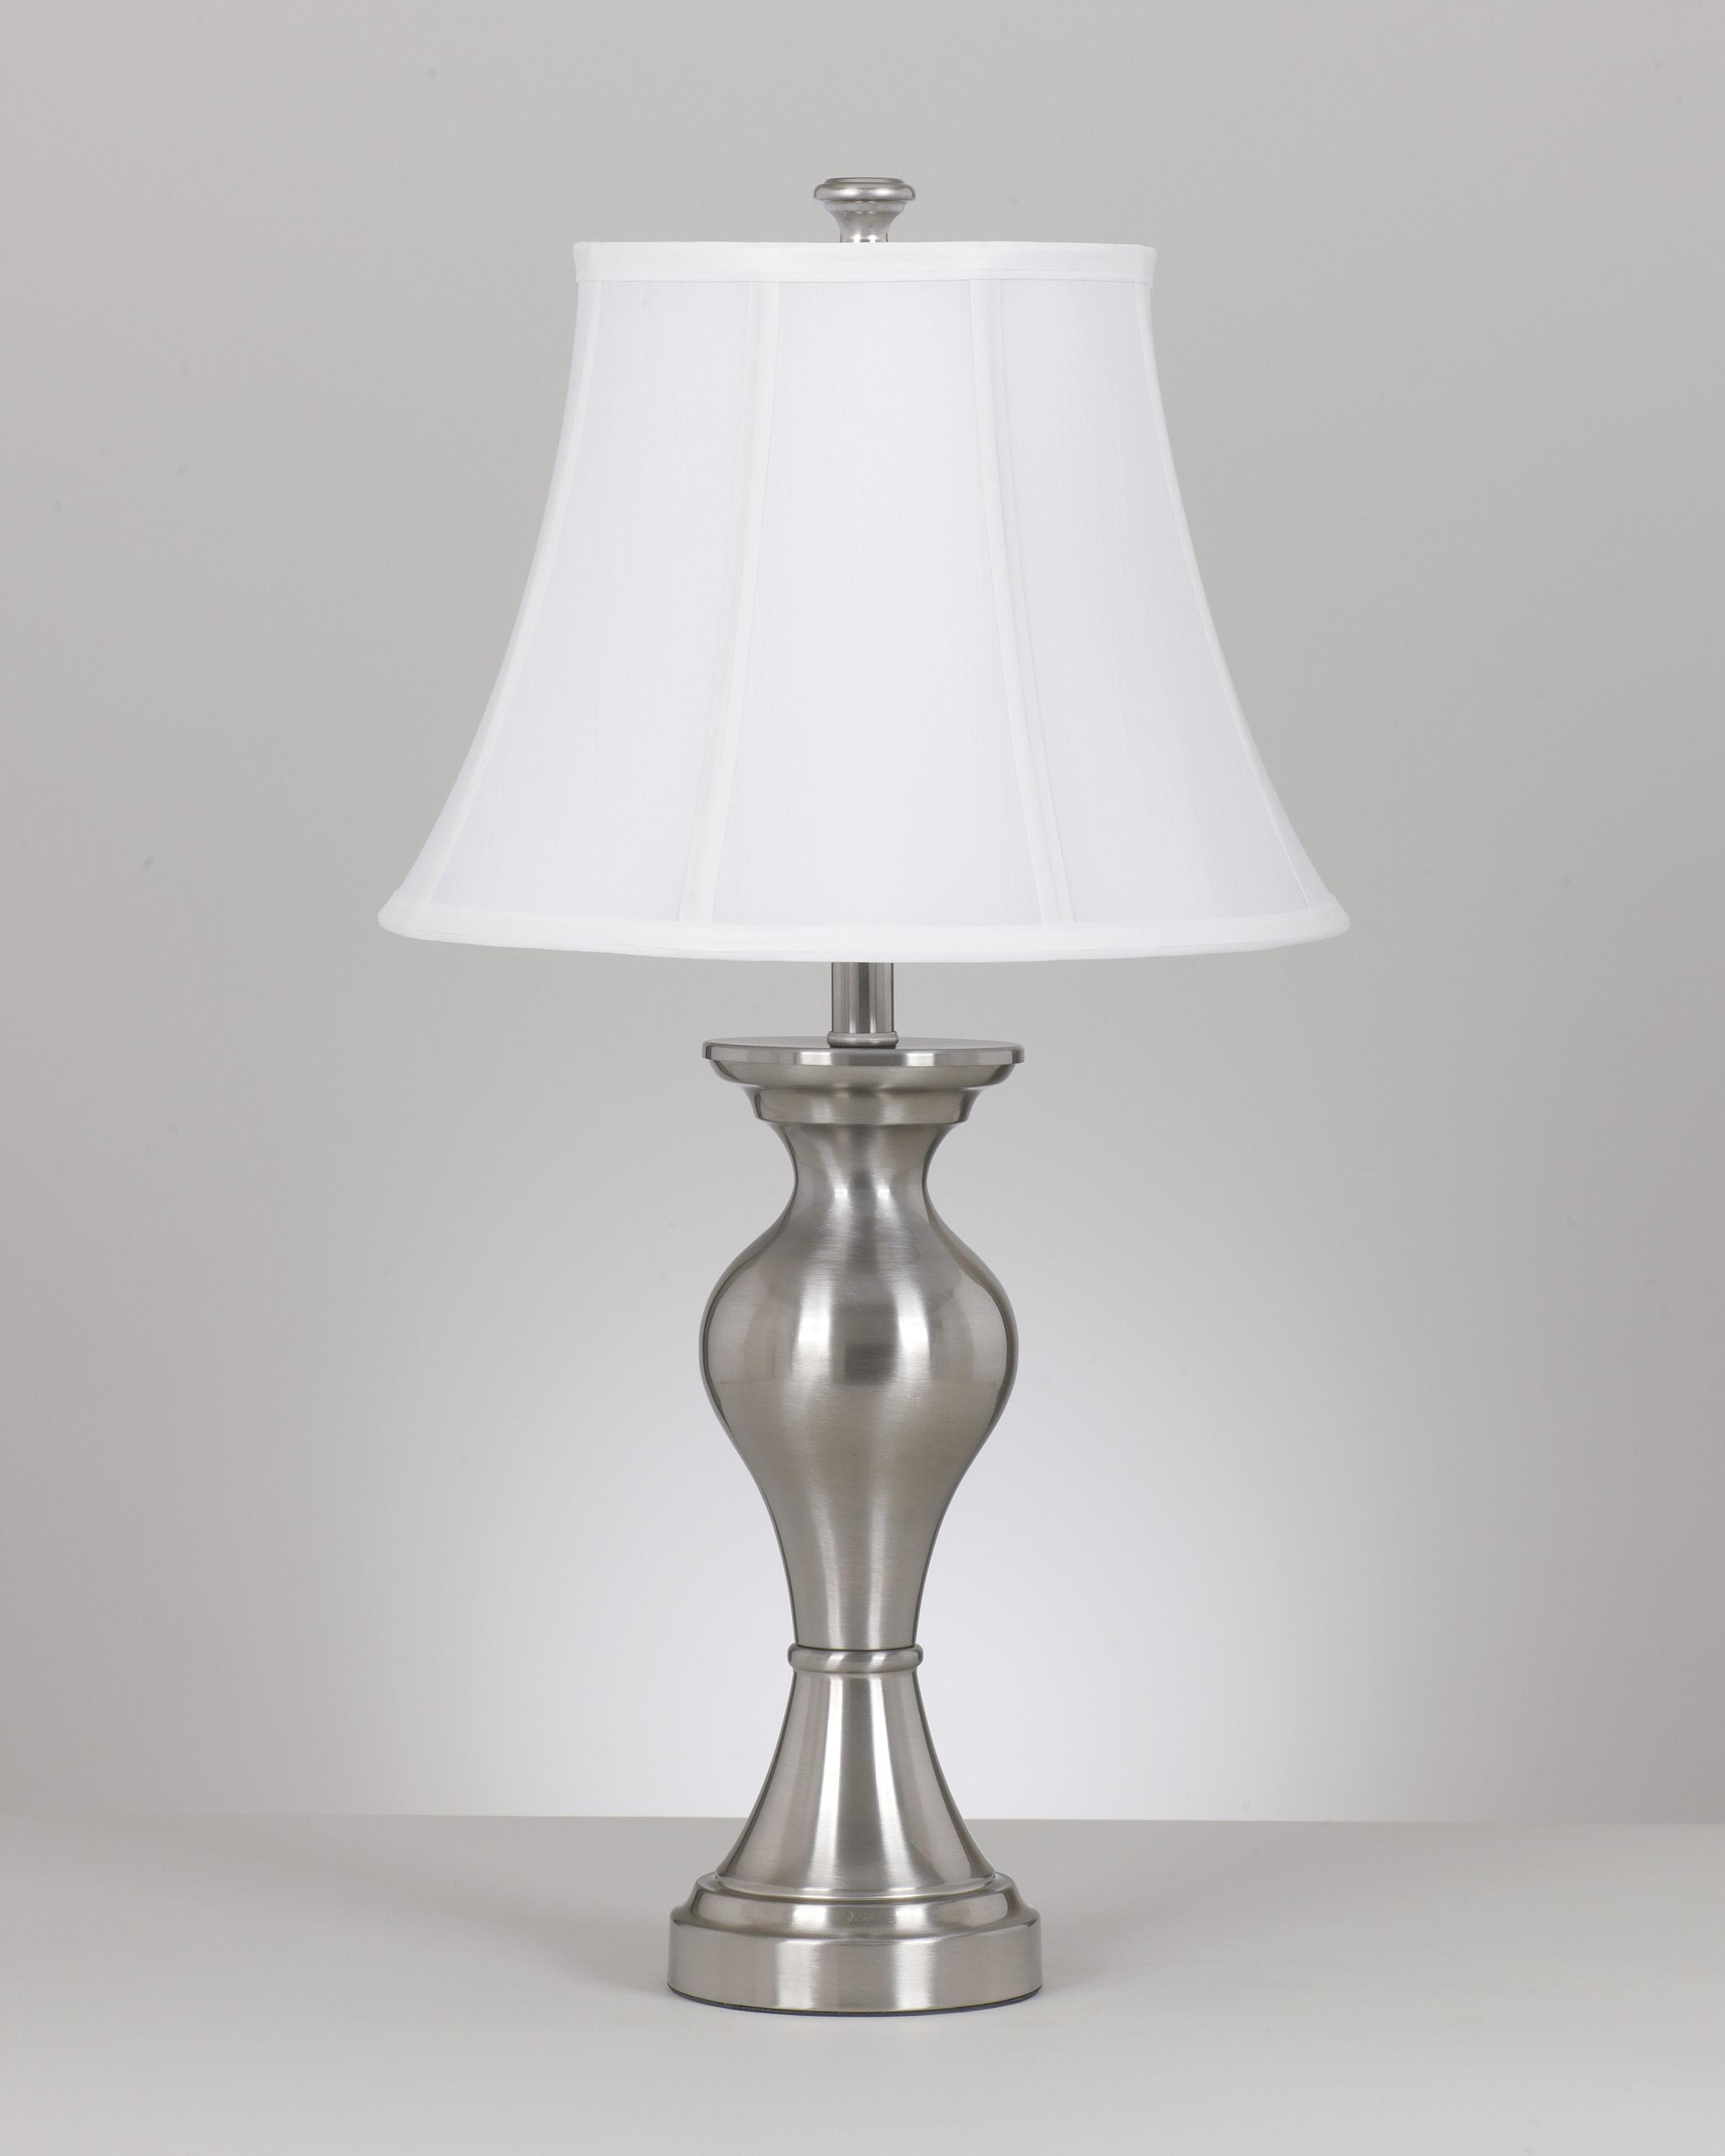 Signature Design by Ashley Lamps - Vintage Style Set of 2 Rishona Metal Table Lamps - Item Number: L204124